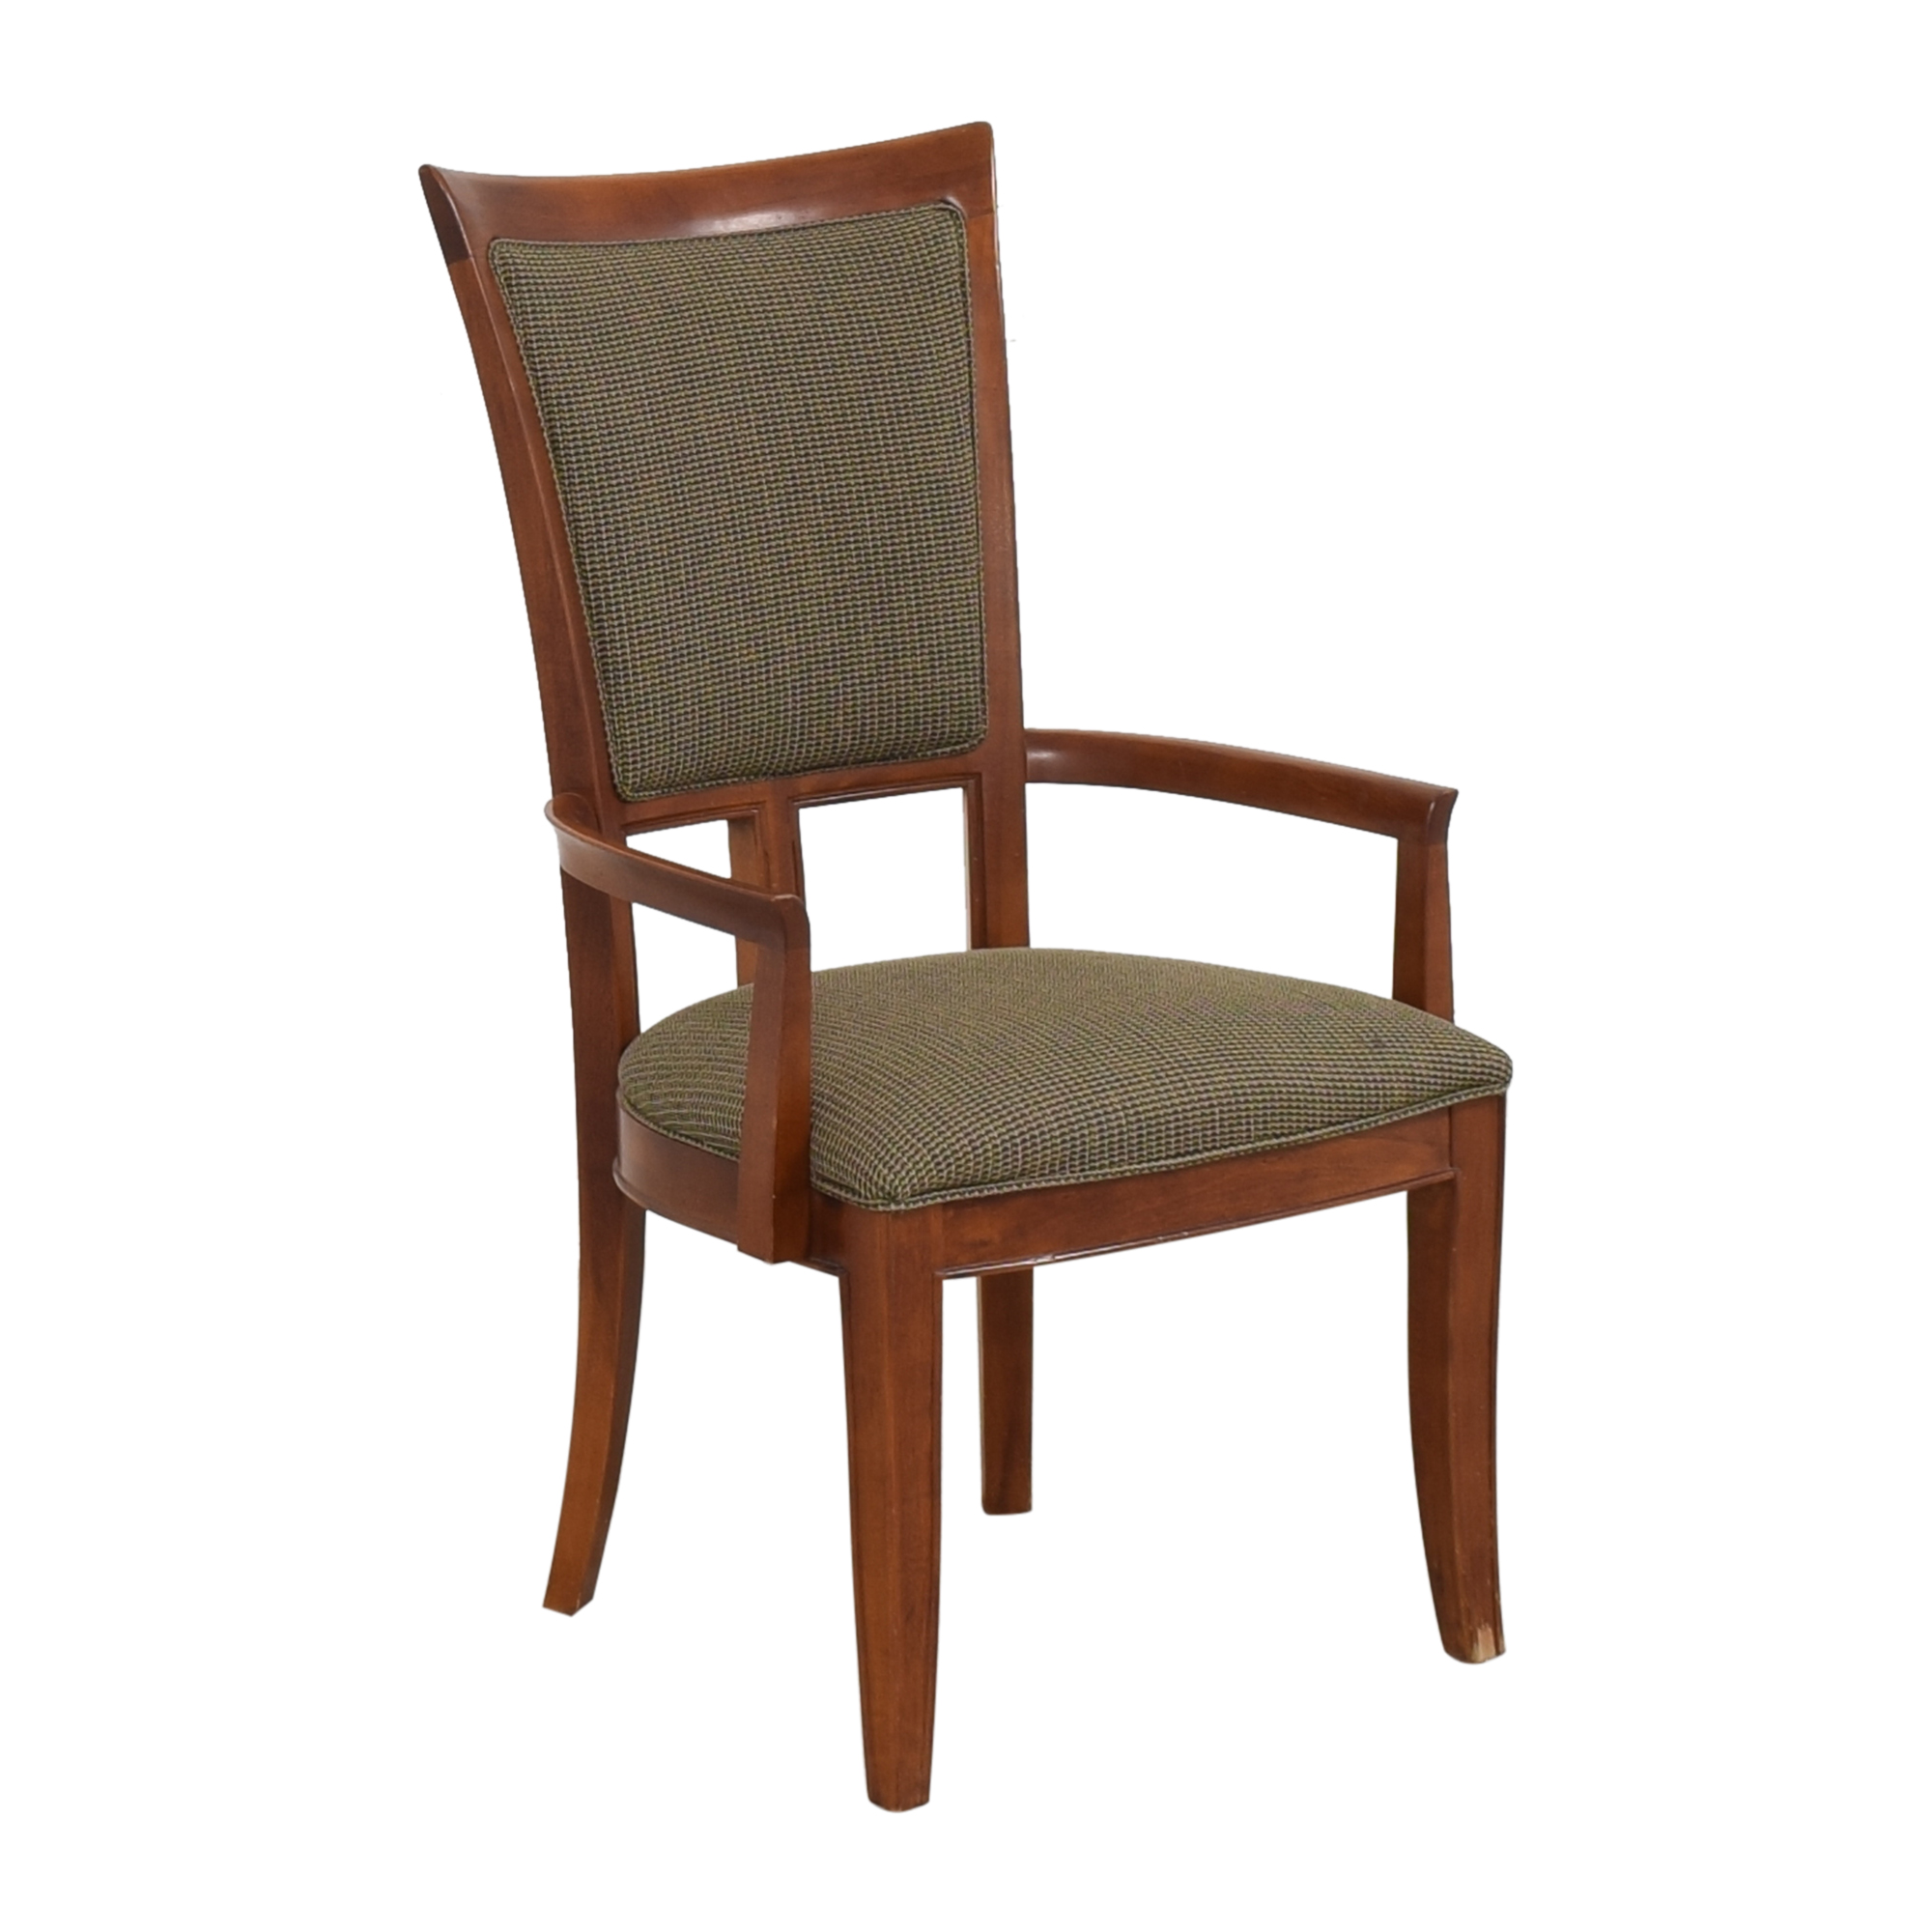 Stanley Furniture Stanley Furniture Upholstered Dining Arm Chair ma